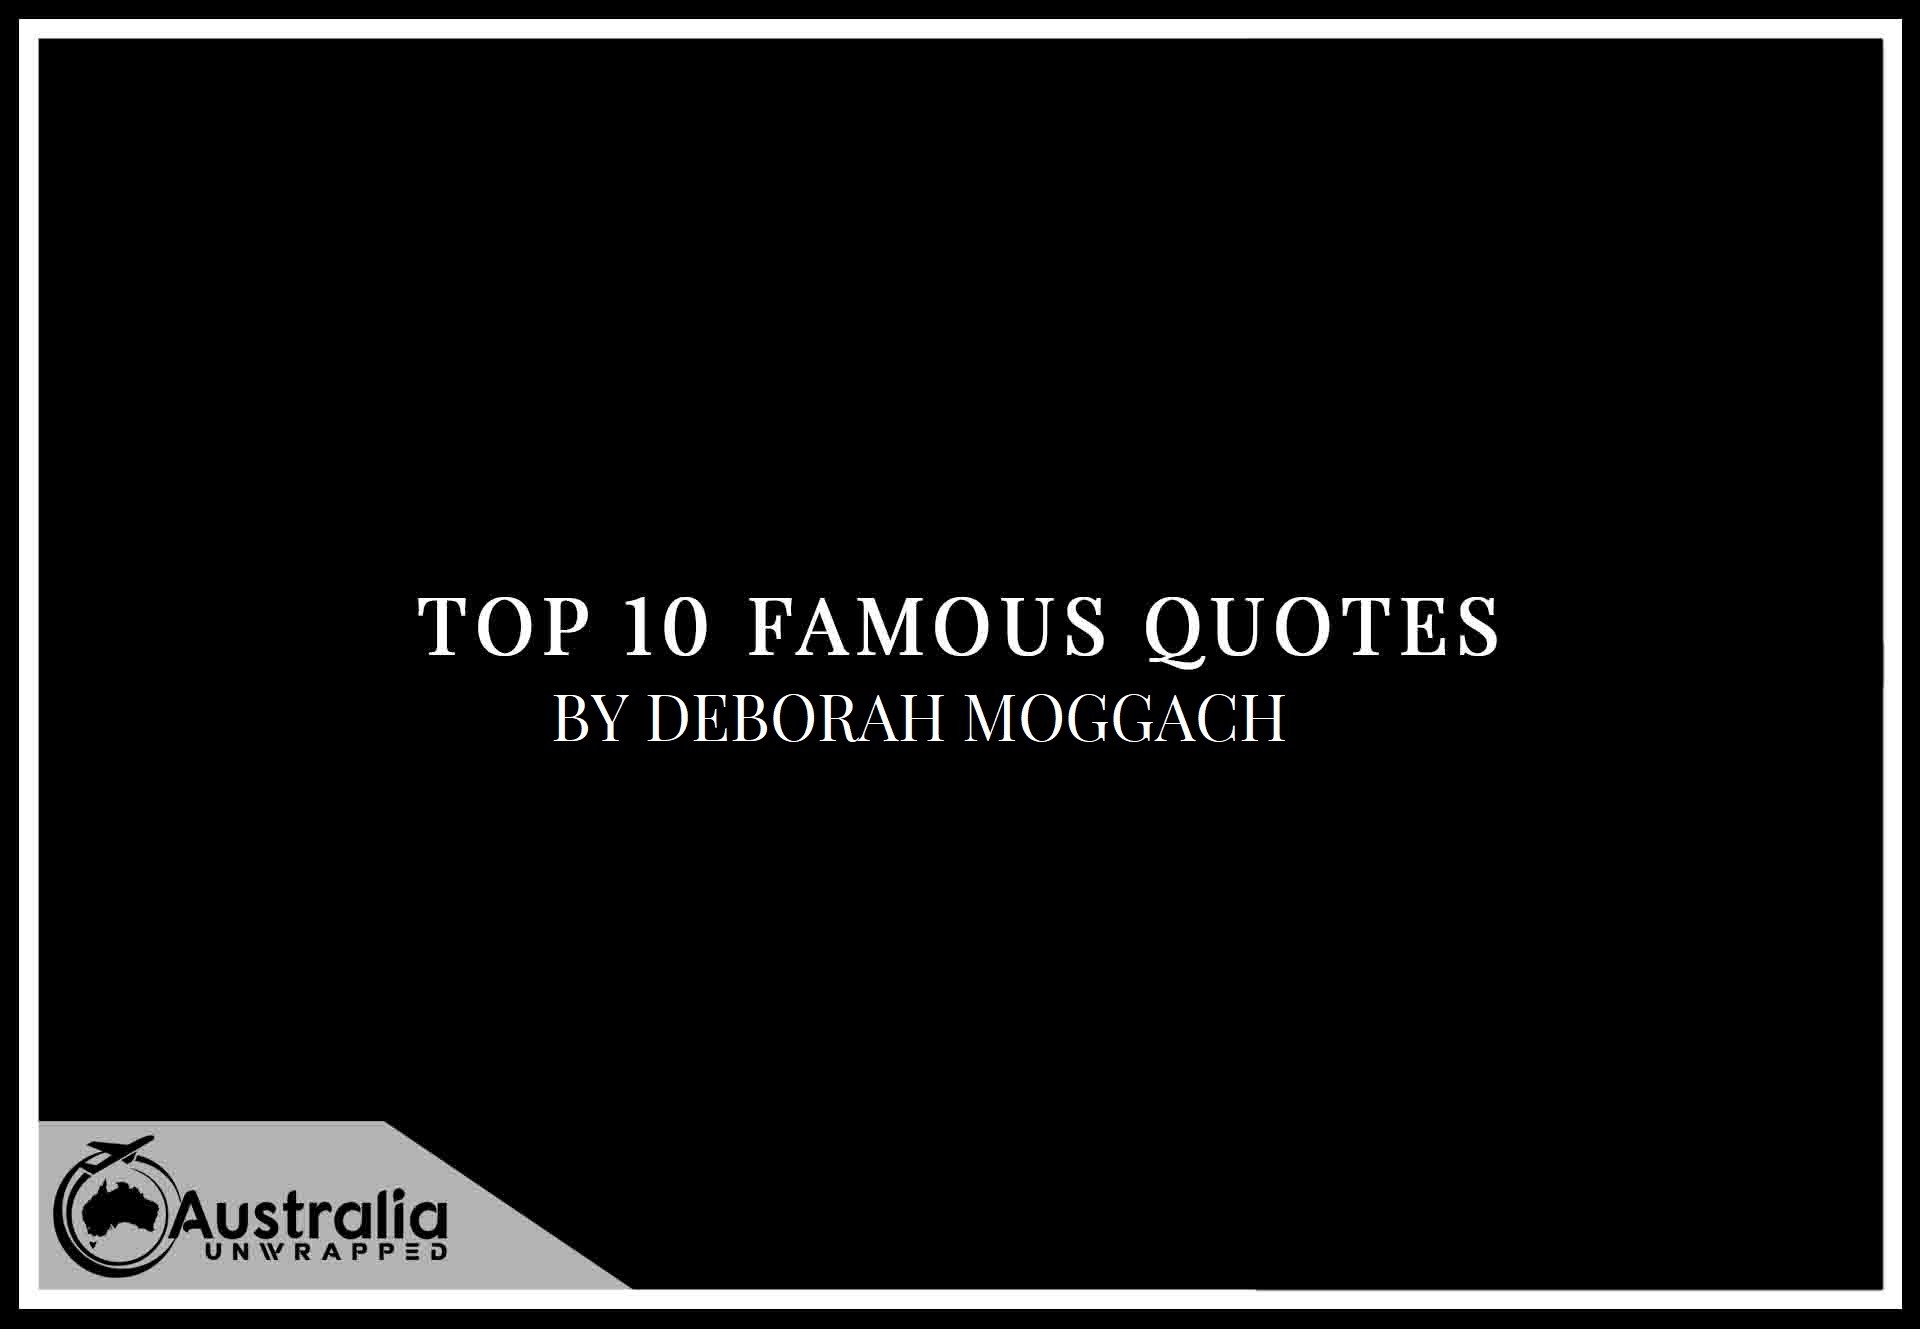 Top 10 Famous Quotes by Author Deborah Moggach